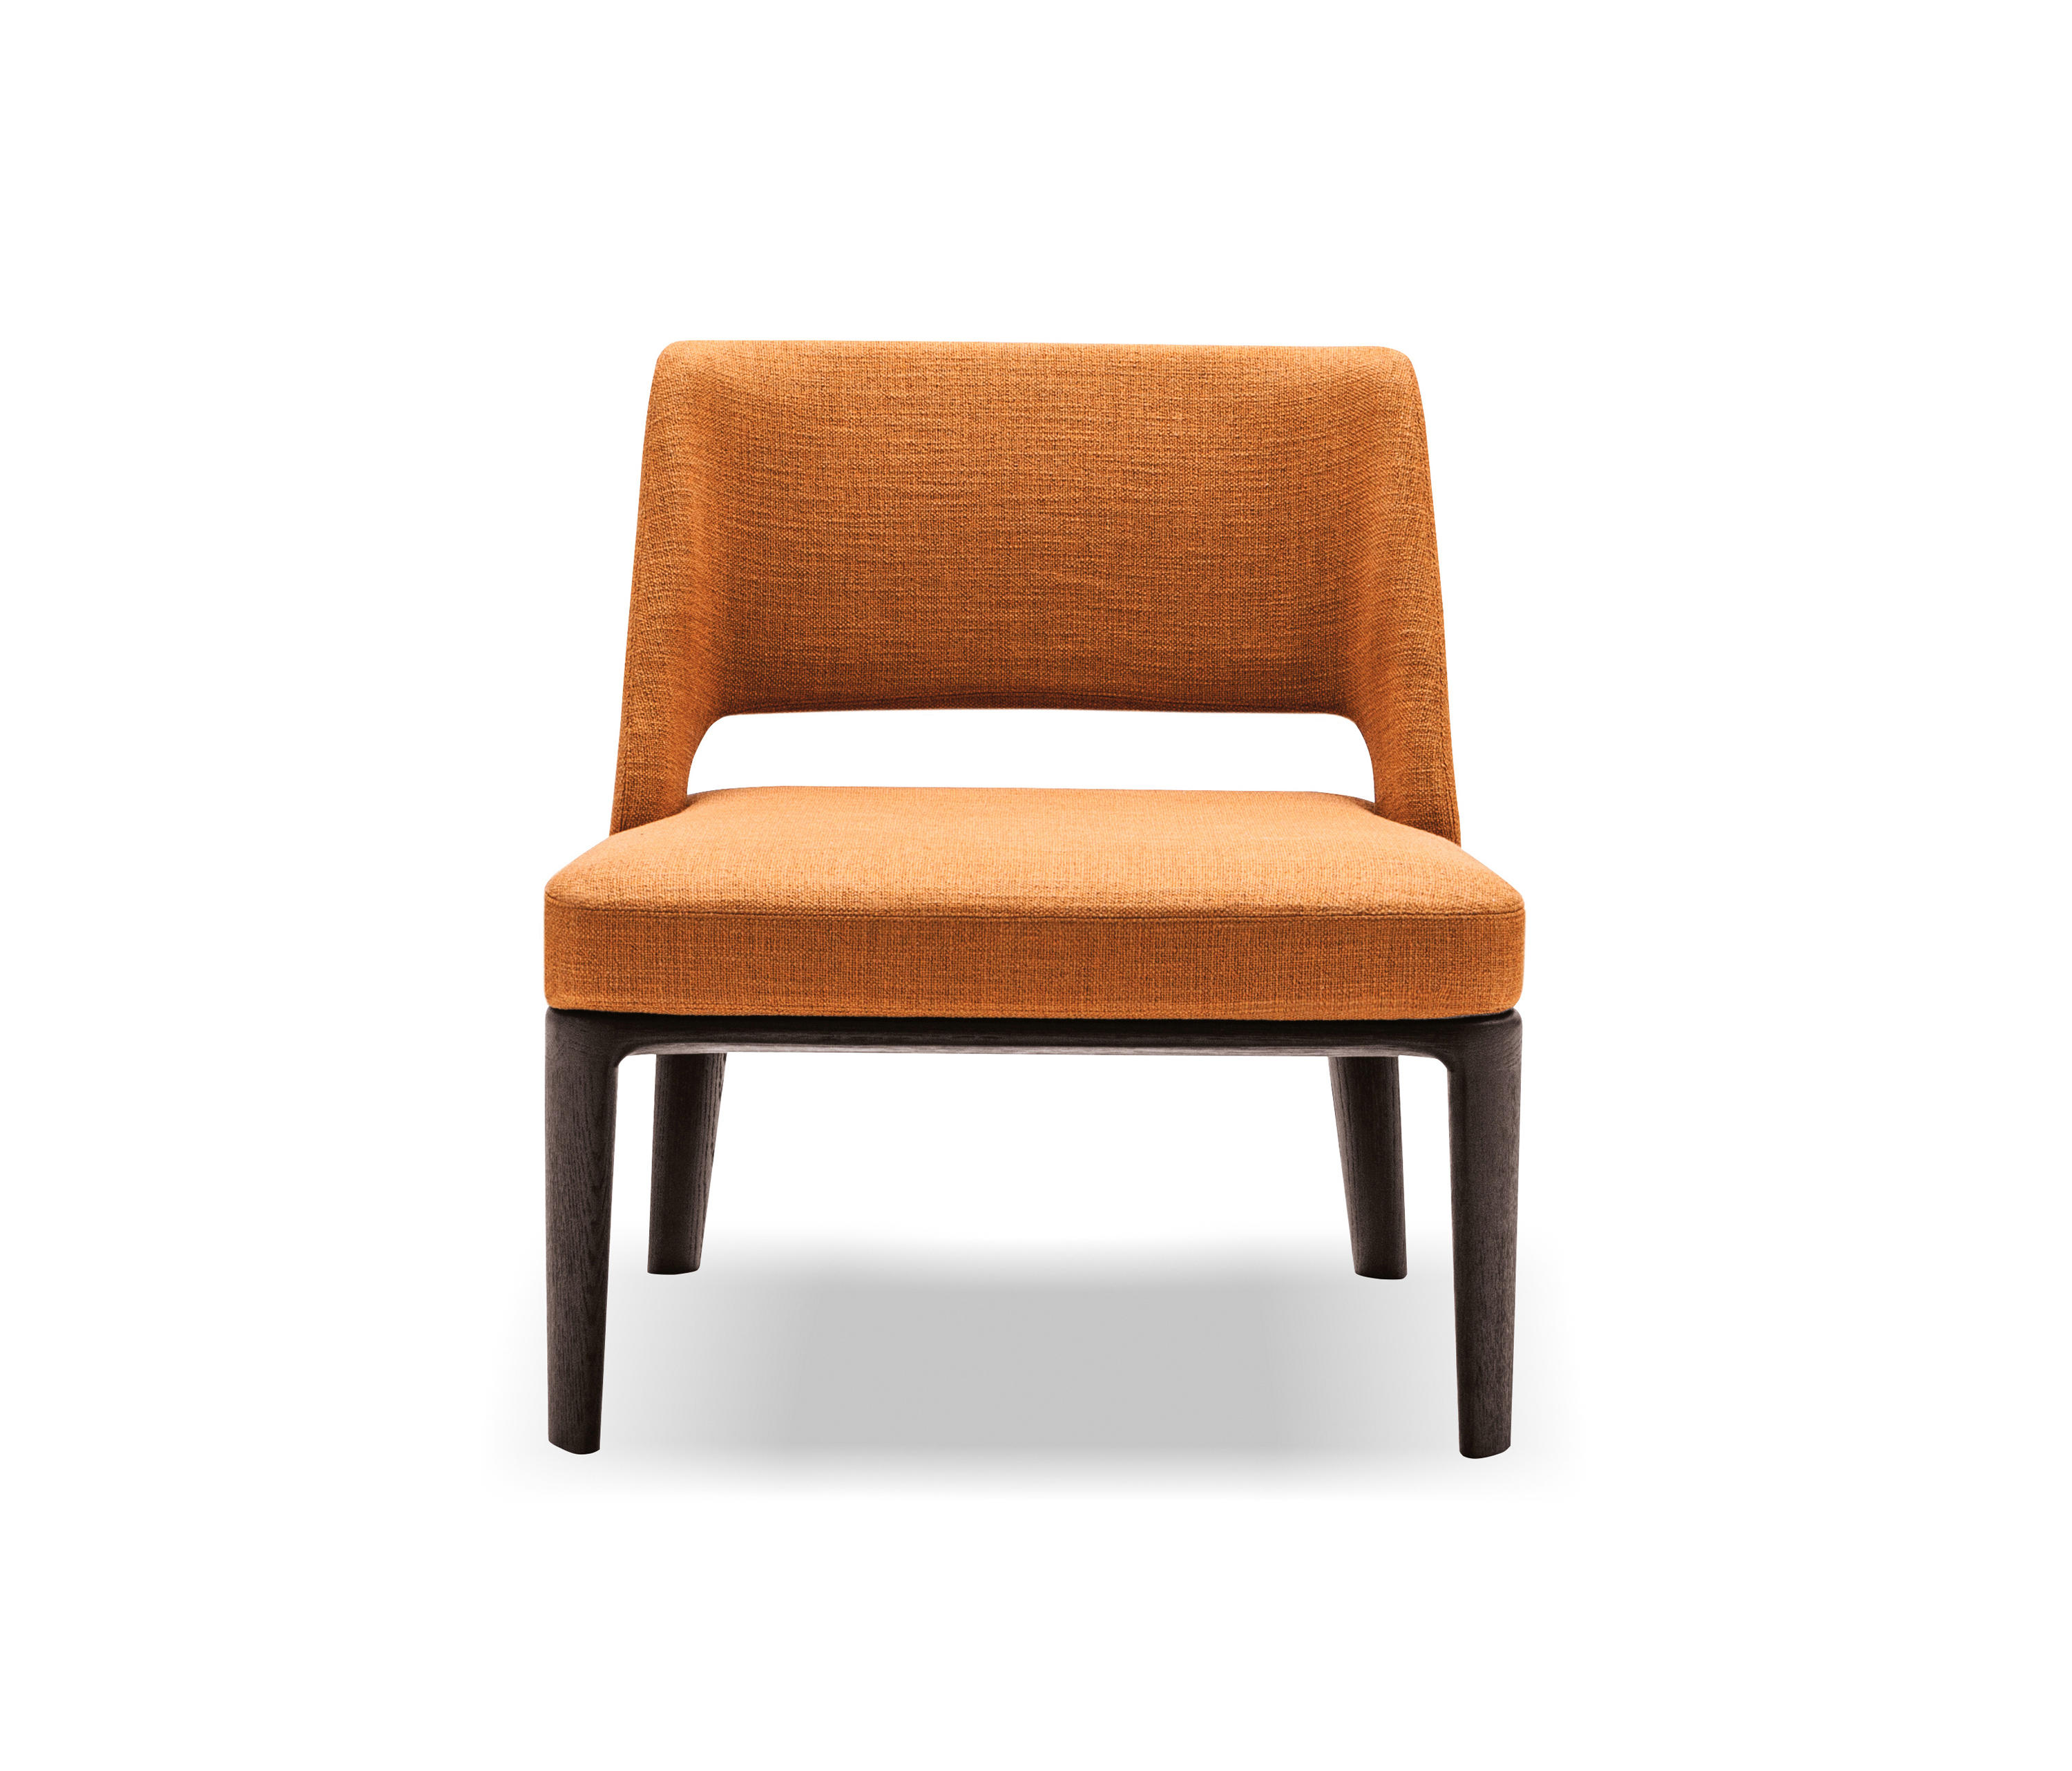 Owens Armchair By Minotti | Lounge Chairs